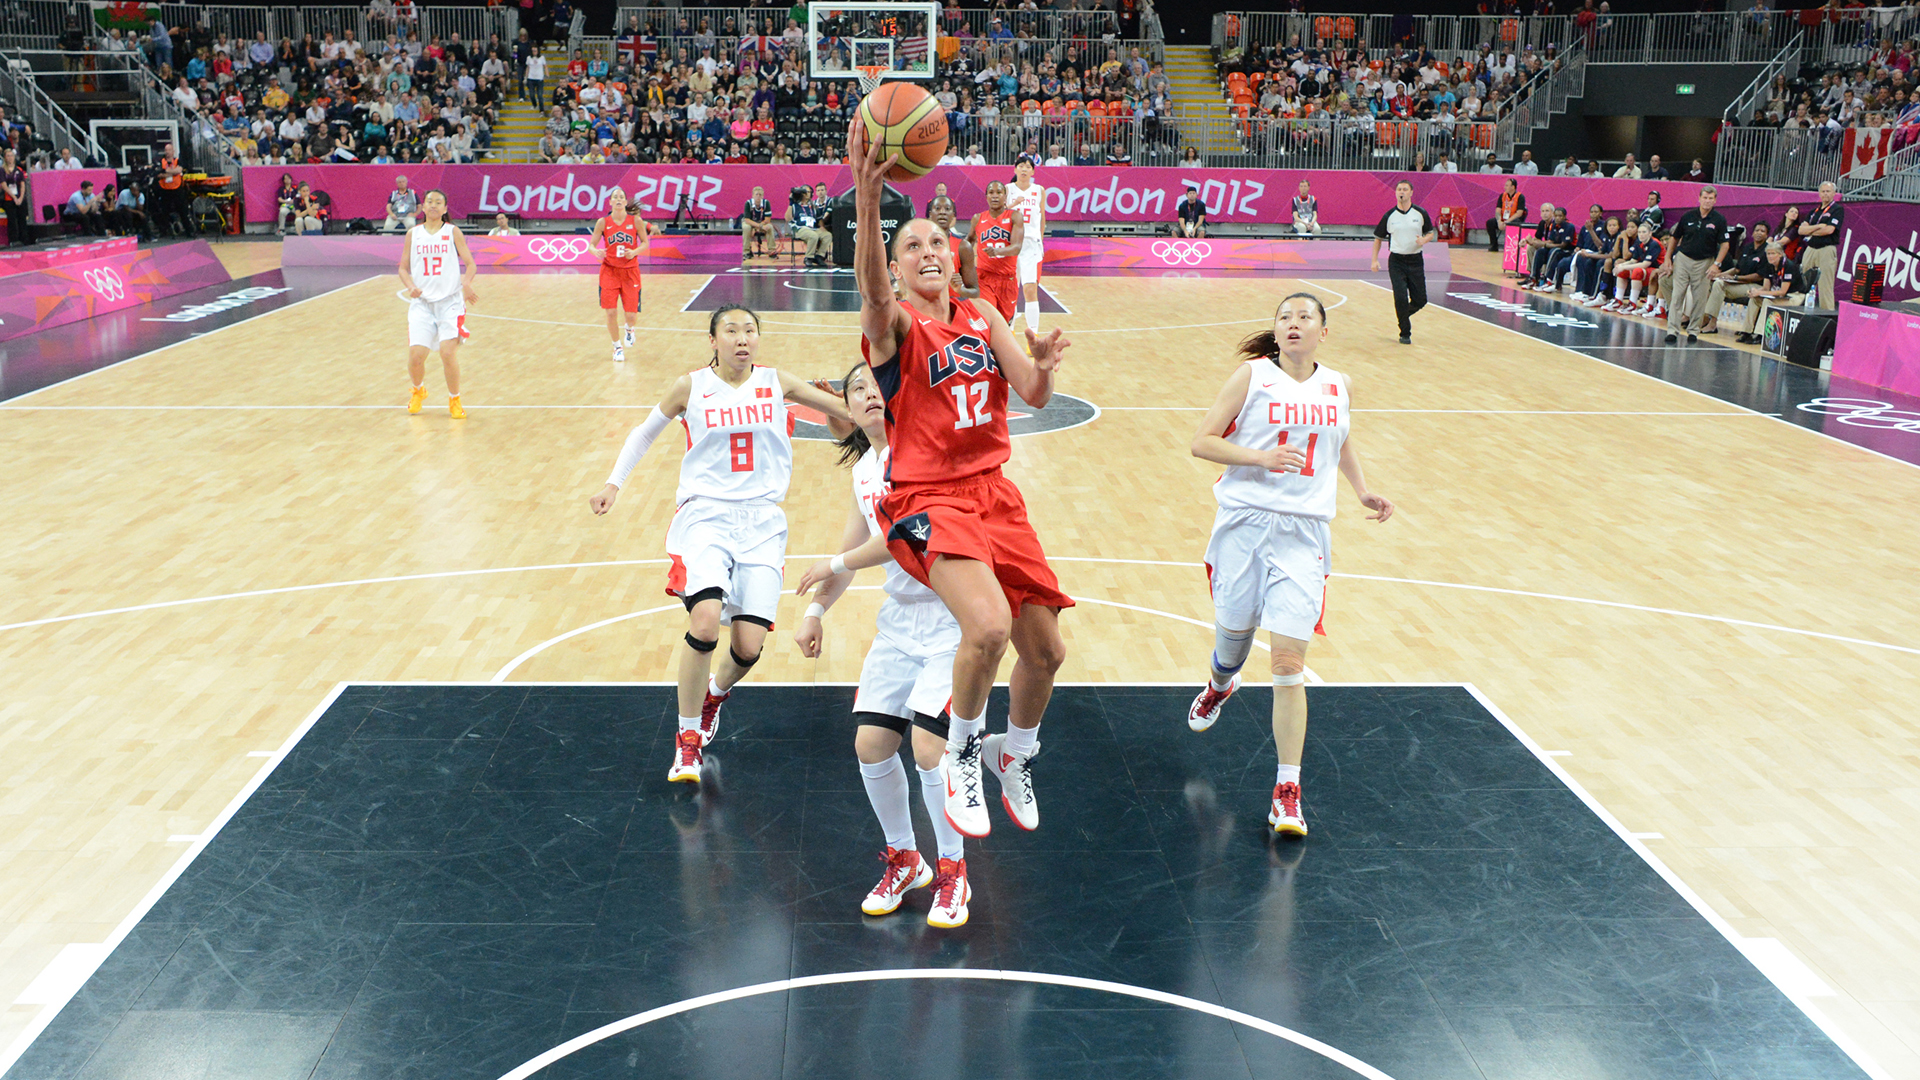 Diana Taurasi goes in for a layup versus China in the 2012 Olympics